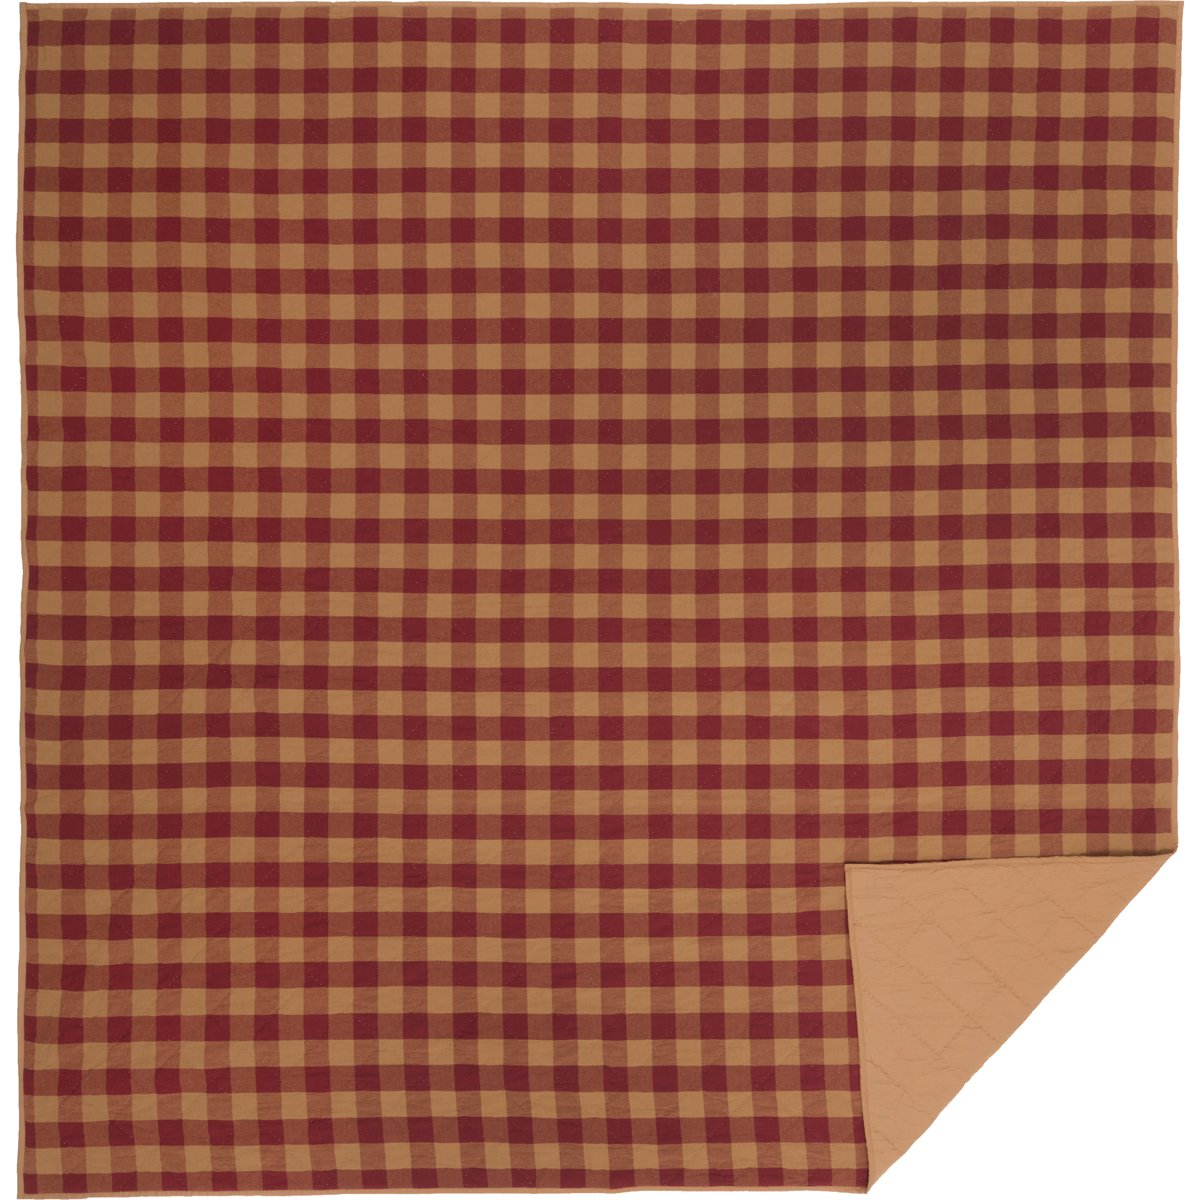 VHC Brands Primitive Bedding Burgundy Check Quilted Coverlet Queen 42378